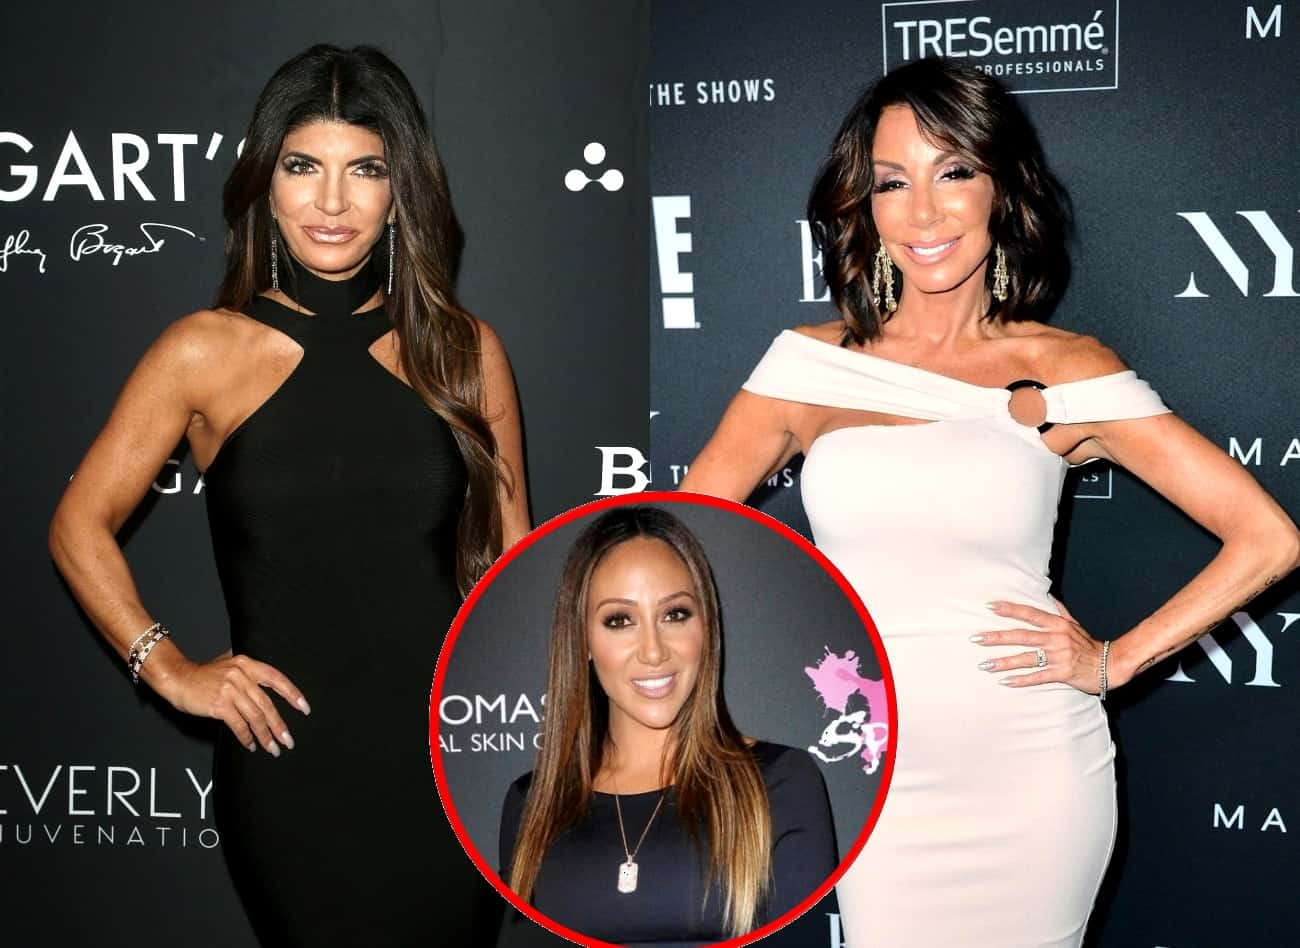 RHONJ's Teresa Giudice and Danielle Staub Had Falling Out Over 'Serious Allegations' Plus Melissa Gorga Was Involved